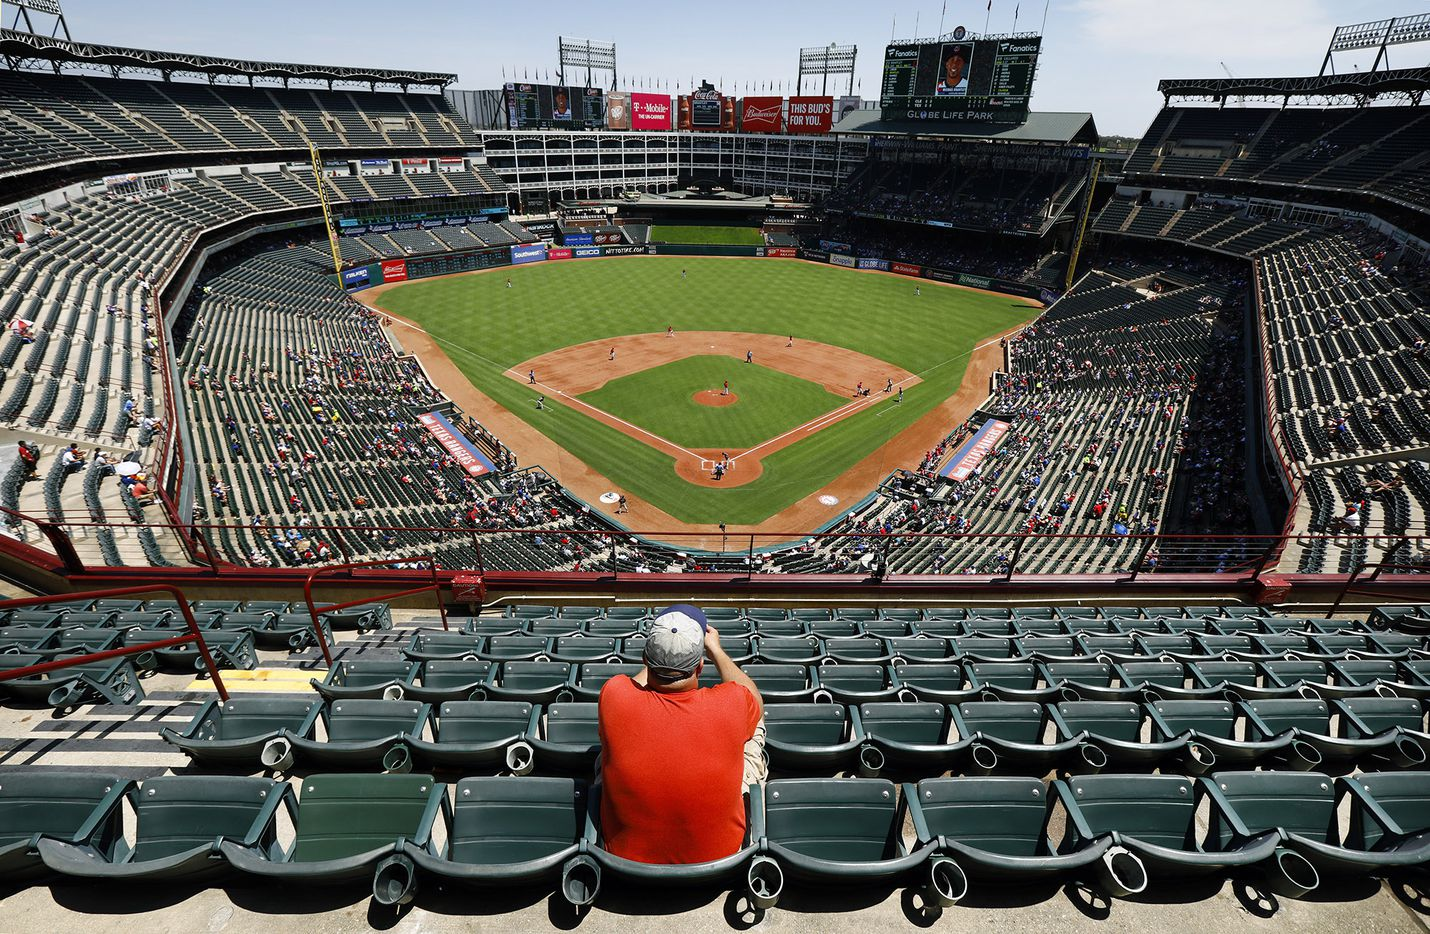 A lone baseball fan, who wished not to provide his name, had several sections of seats in the sun to choose from during the Texas Rangers-Cleveland Indians game at Globe Life Park in Arlington, Texas, Sunday, July 22, 2018.